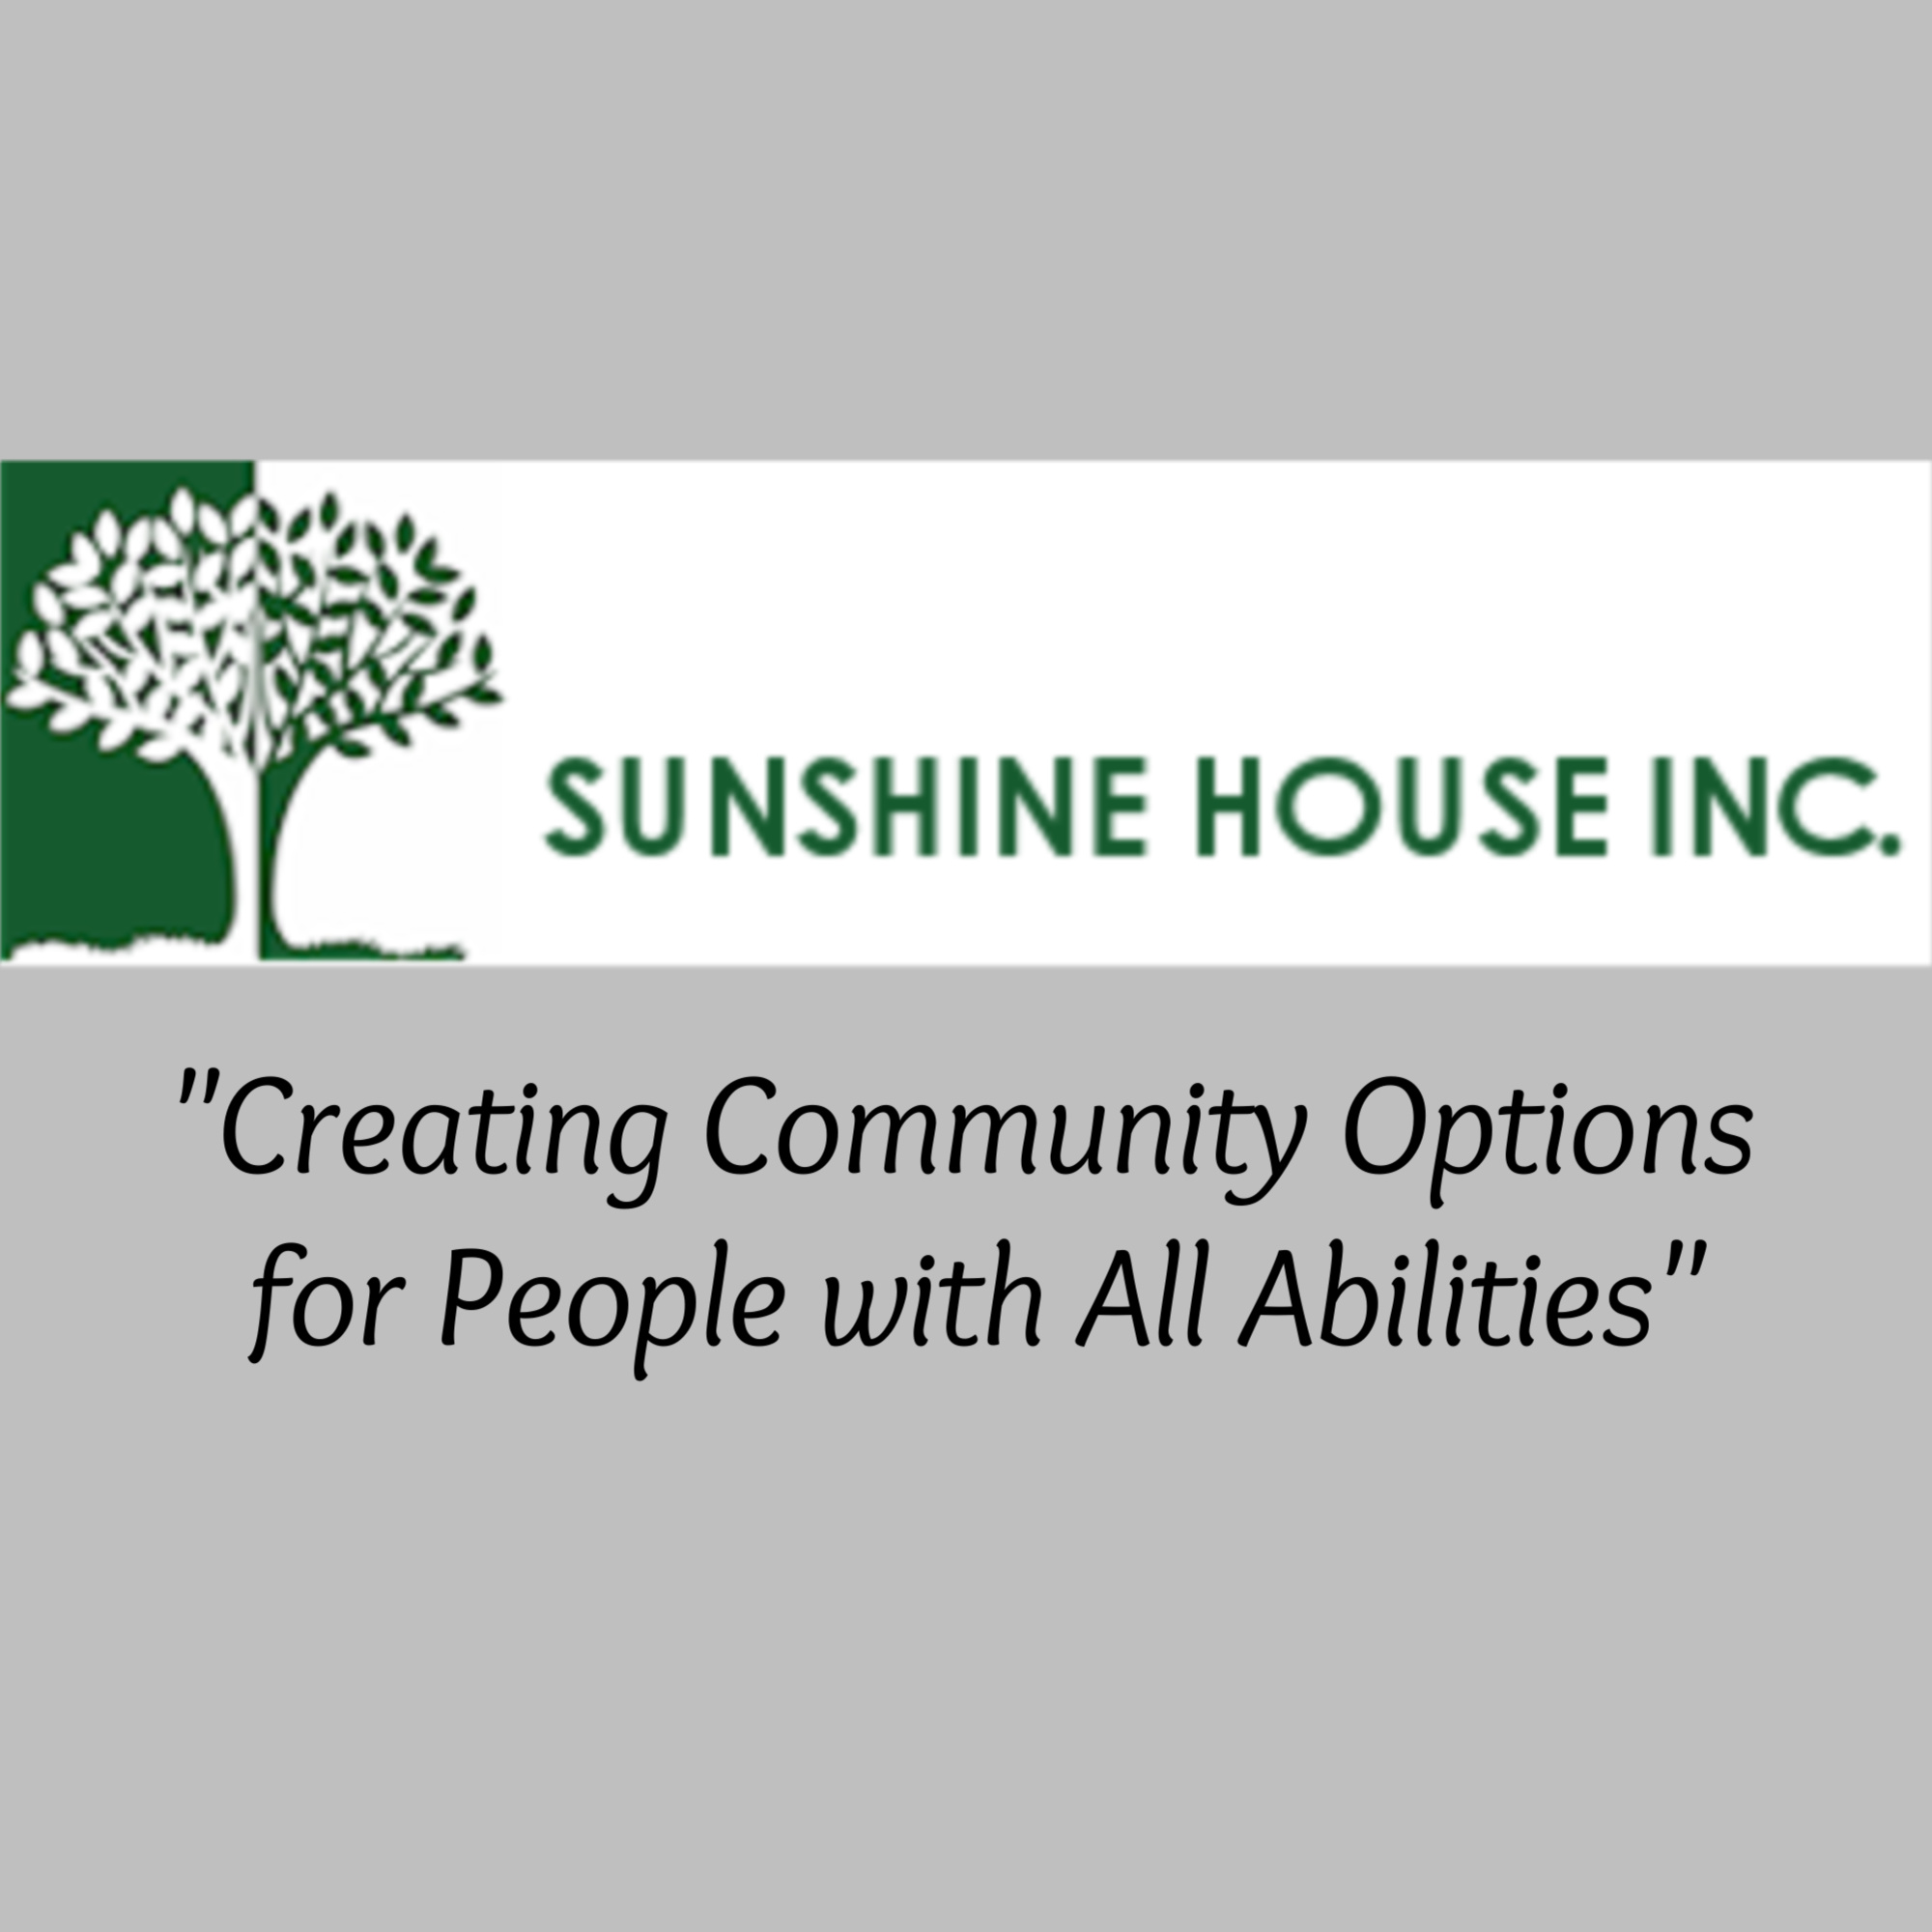 The Sunshine House Inc.